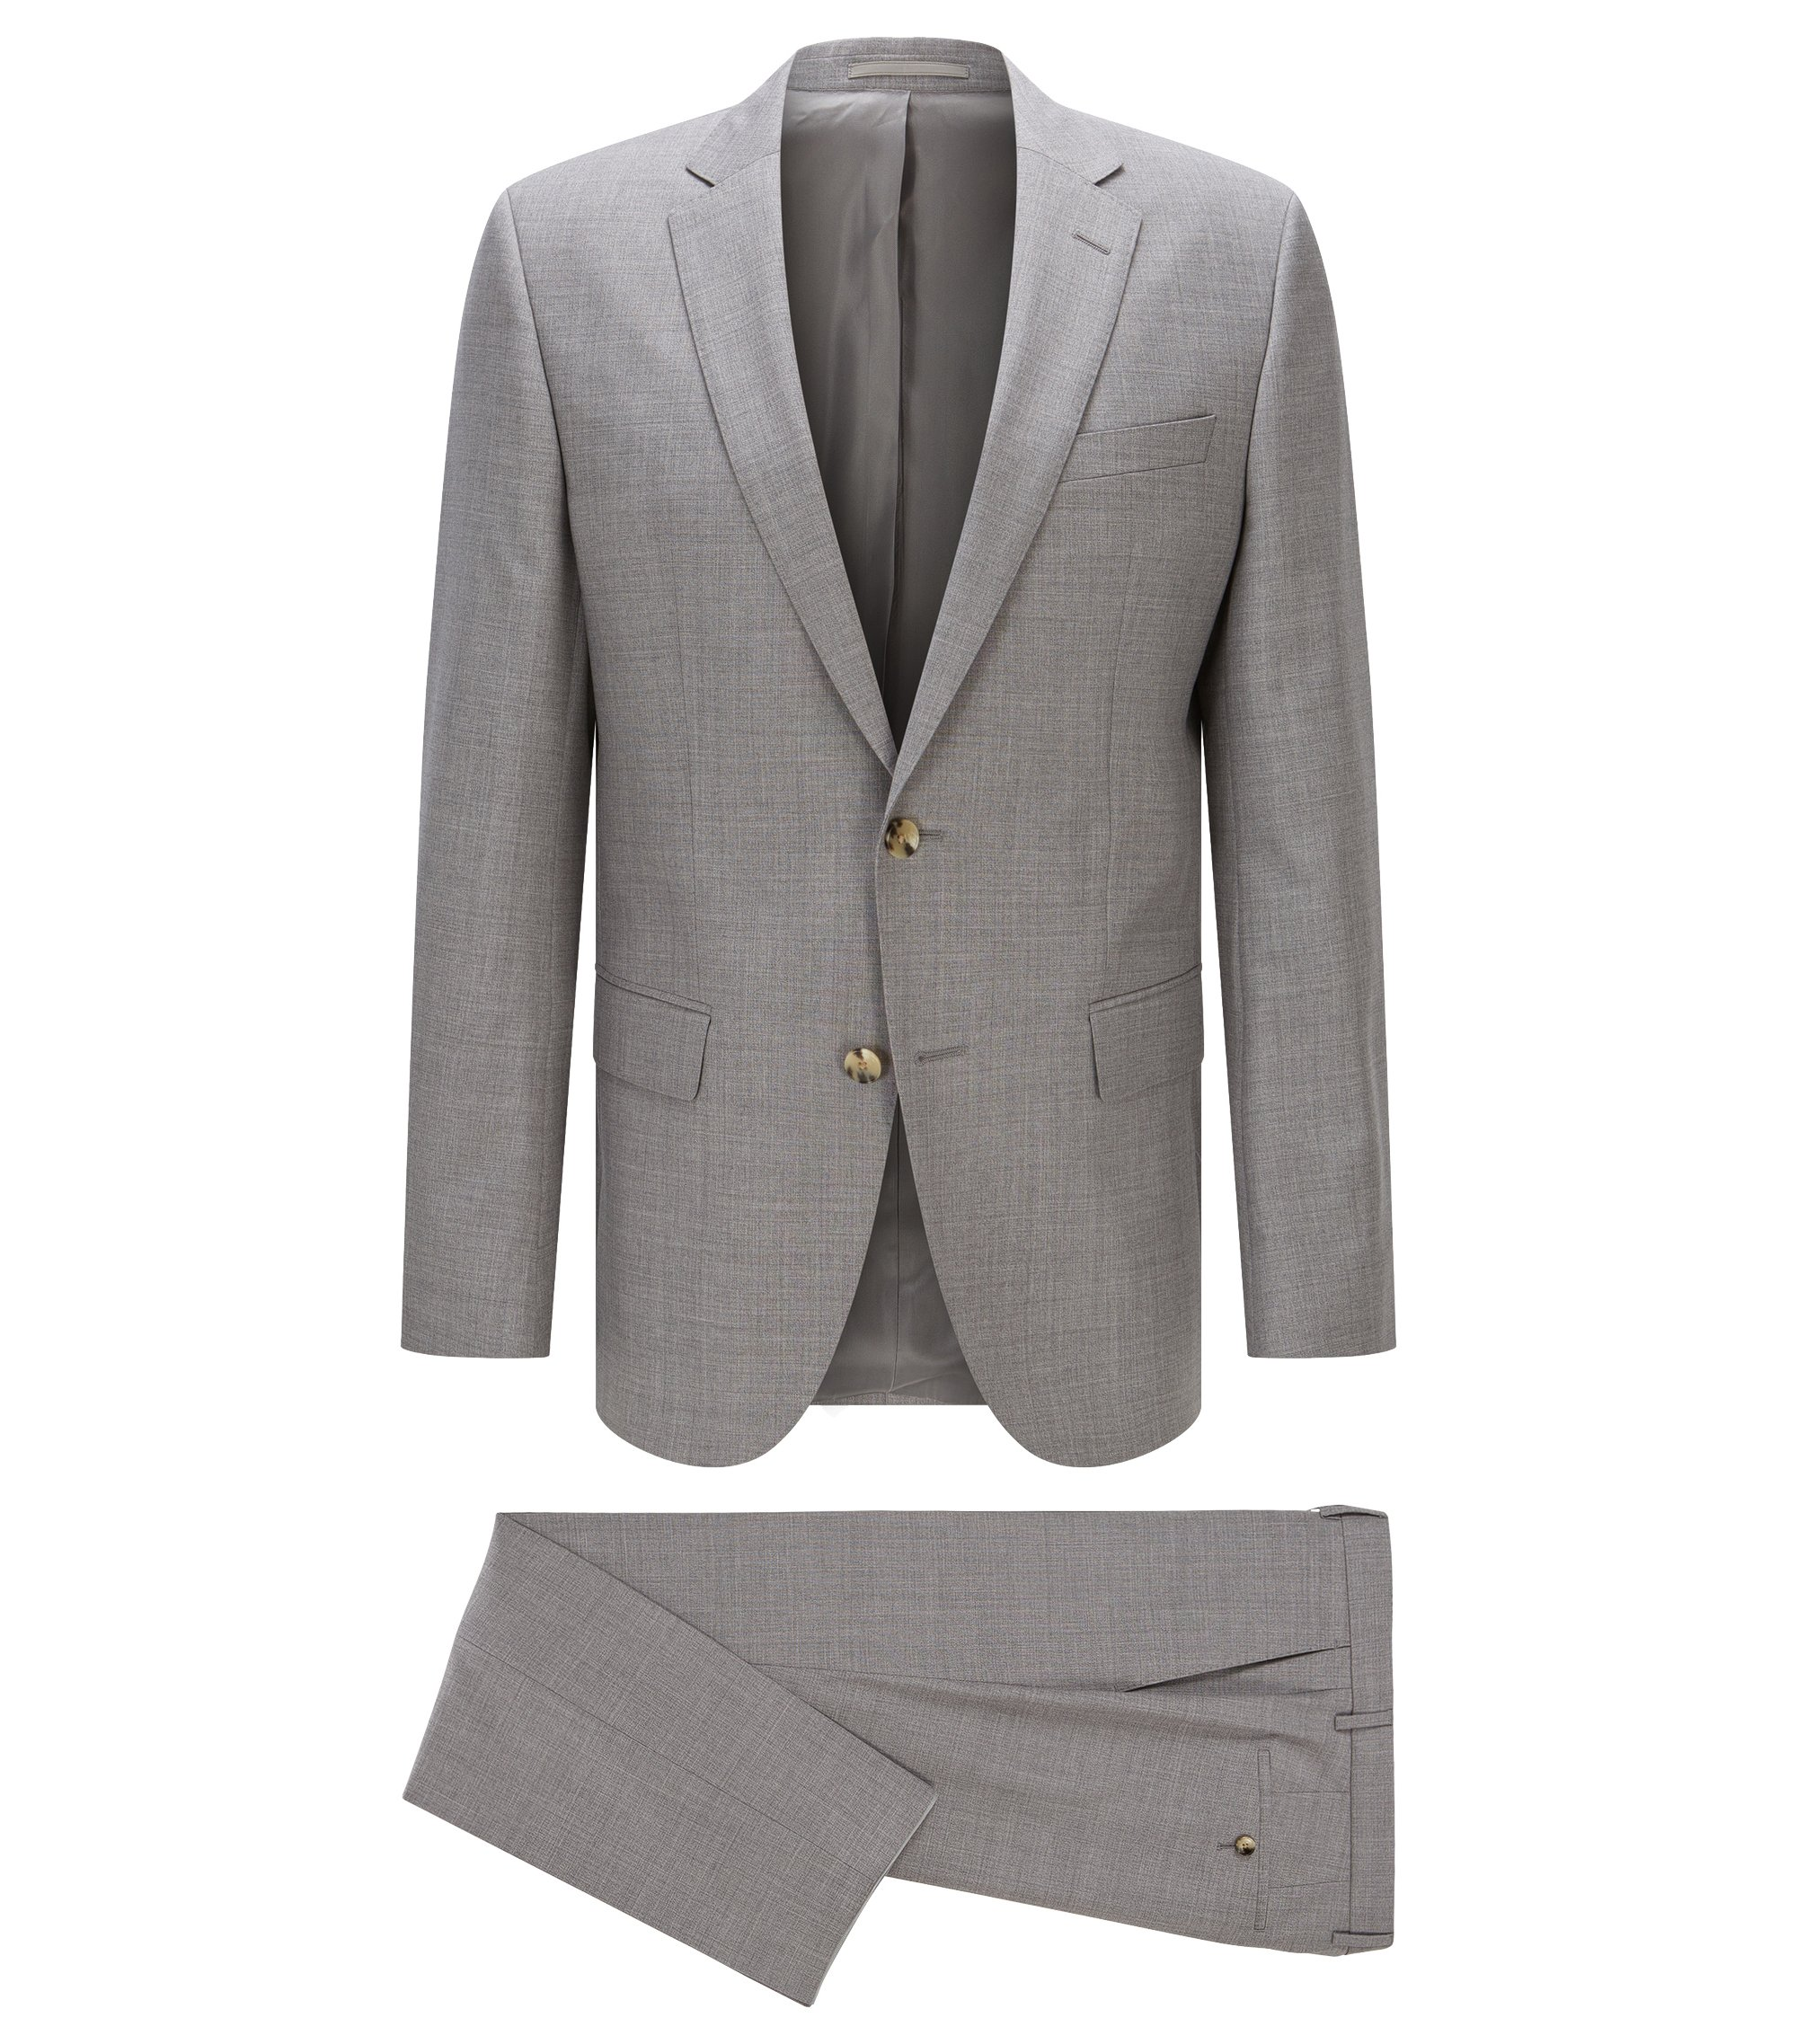 Italian Virgin Wool Suit, Slim Fit | Huge/Genius, Silver